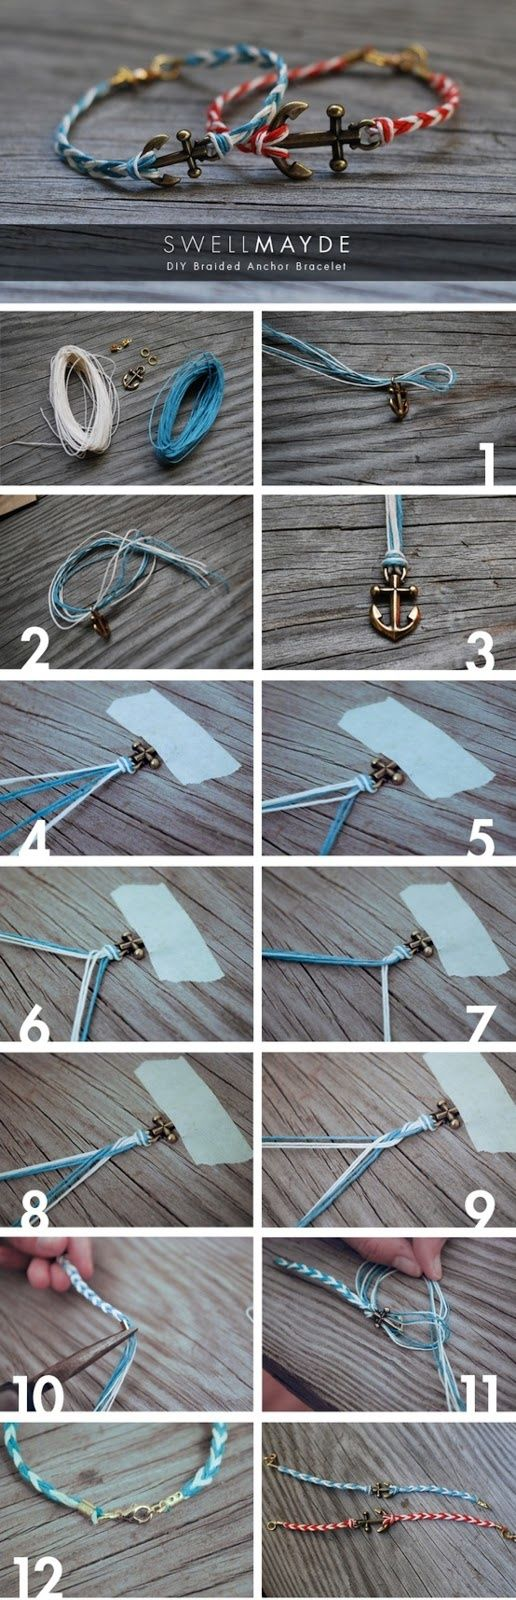 20 Great DIY Bracelets and Rings Tutorials @Ana Schultz anchors? you could make these for your sorority fam